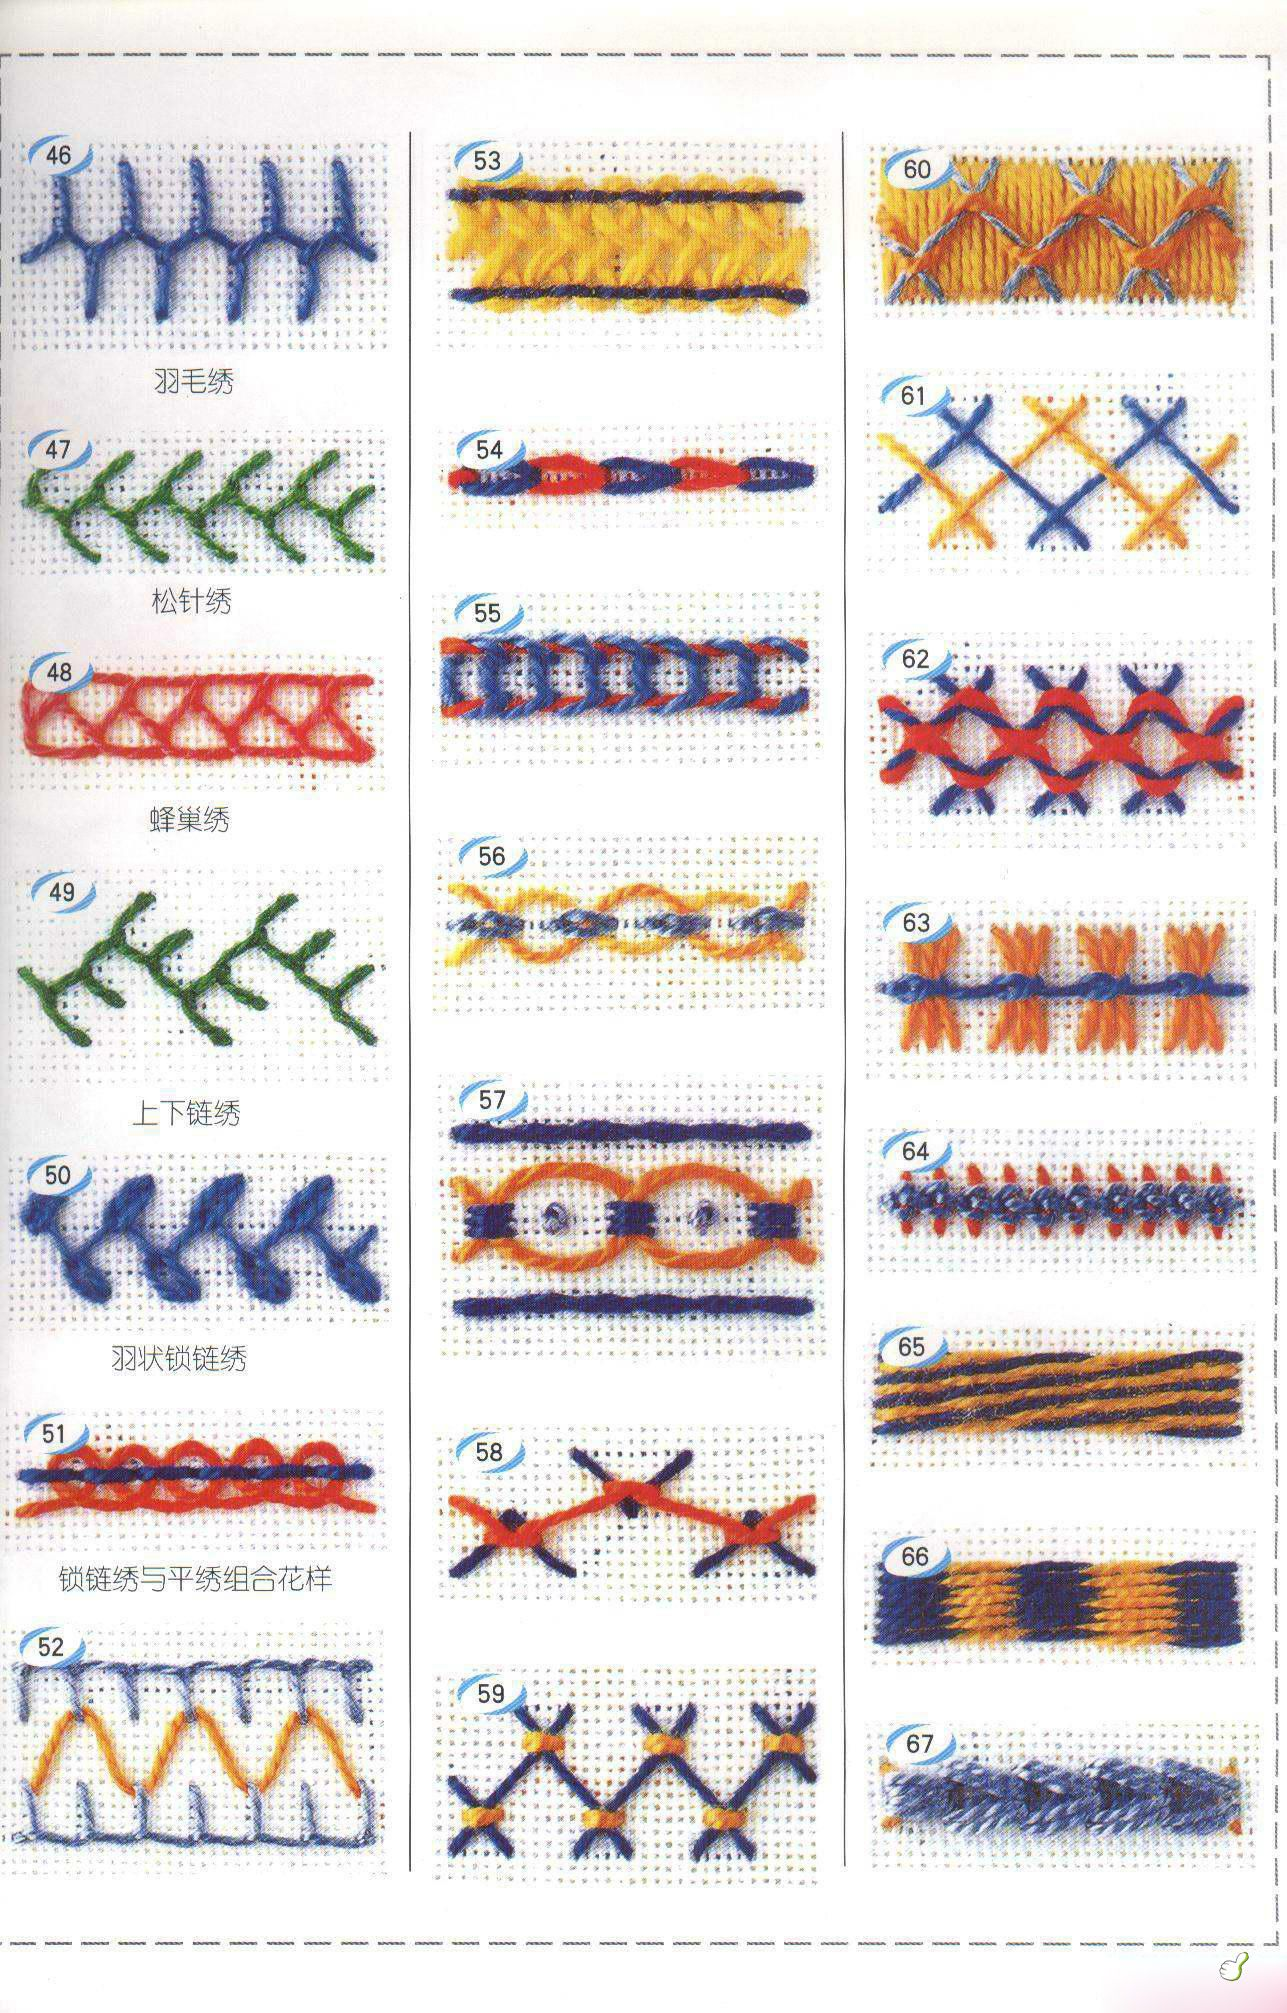 Embroidery Cross Stitch Border Patterns Embroidery Stitches Crazy Quilt Stitches Embroidery Techniques